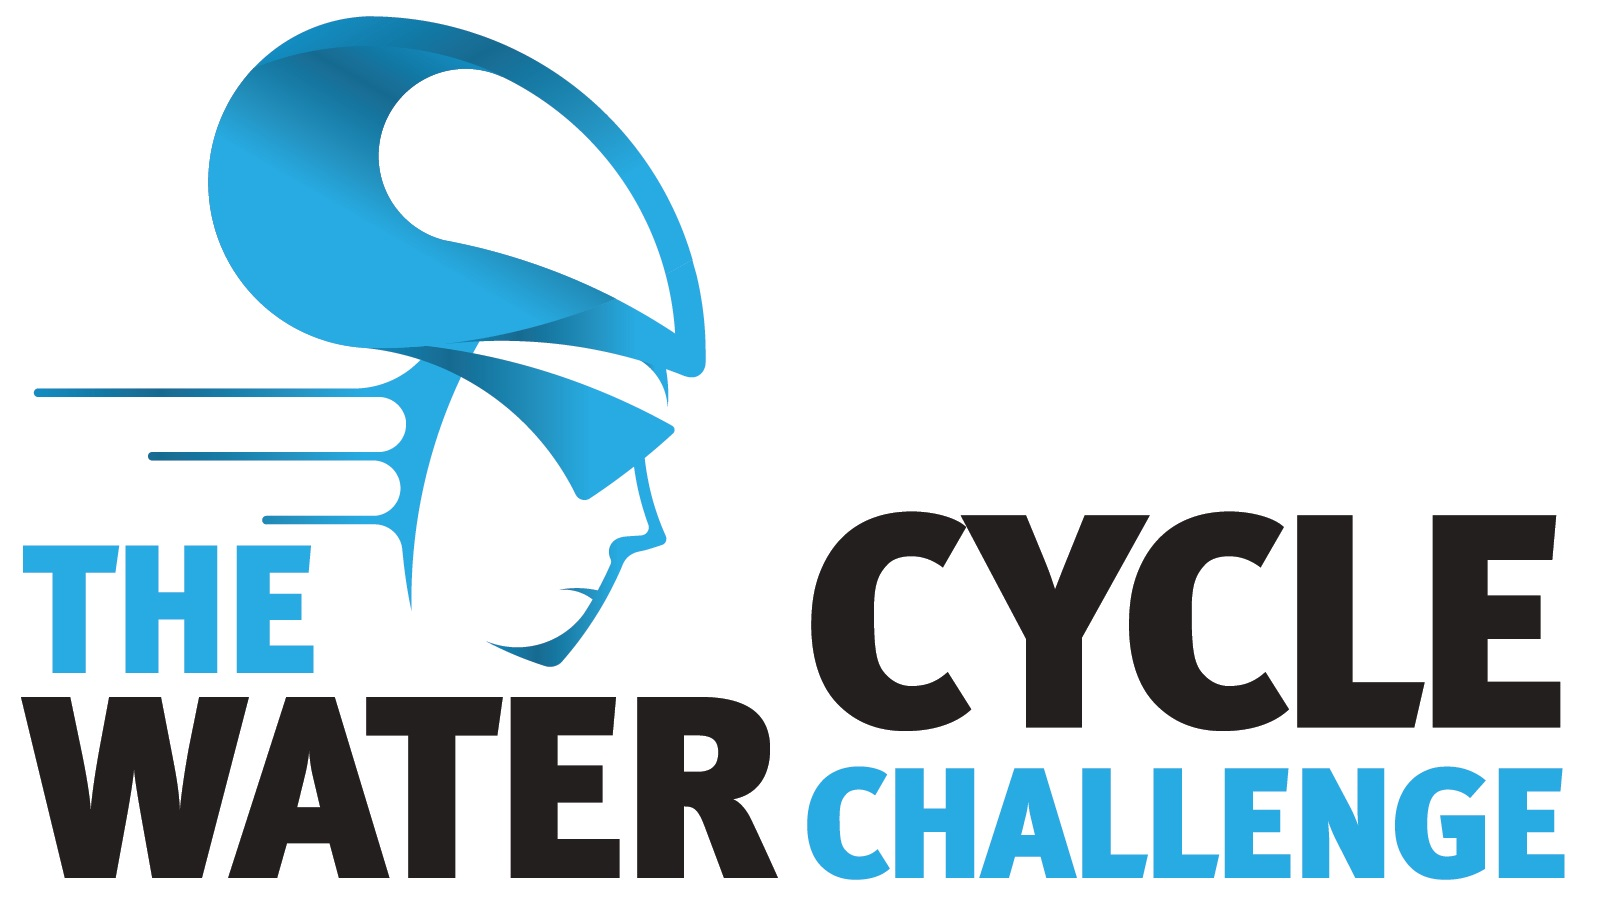 The Water Cycle Challenge